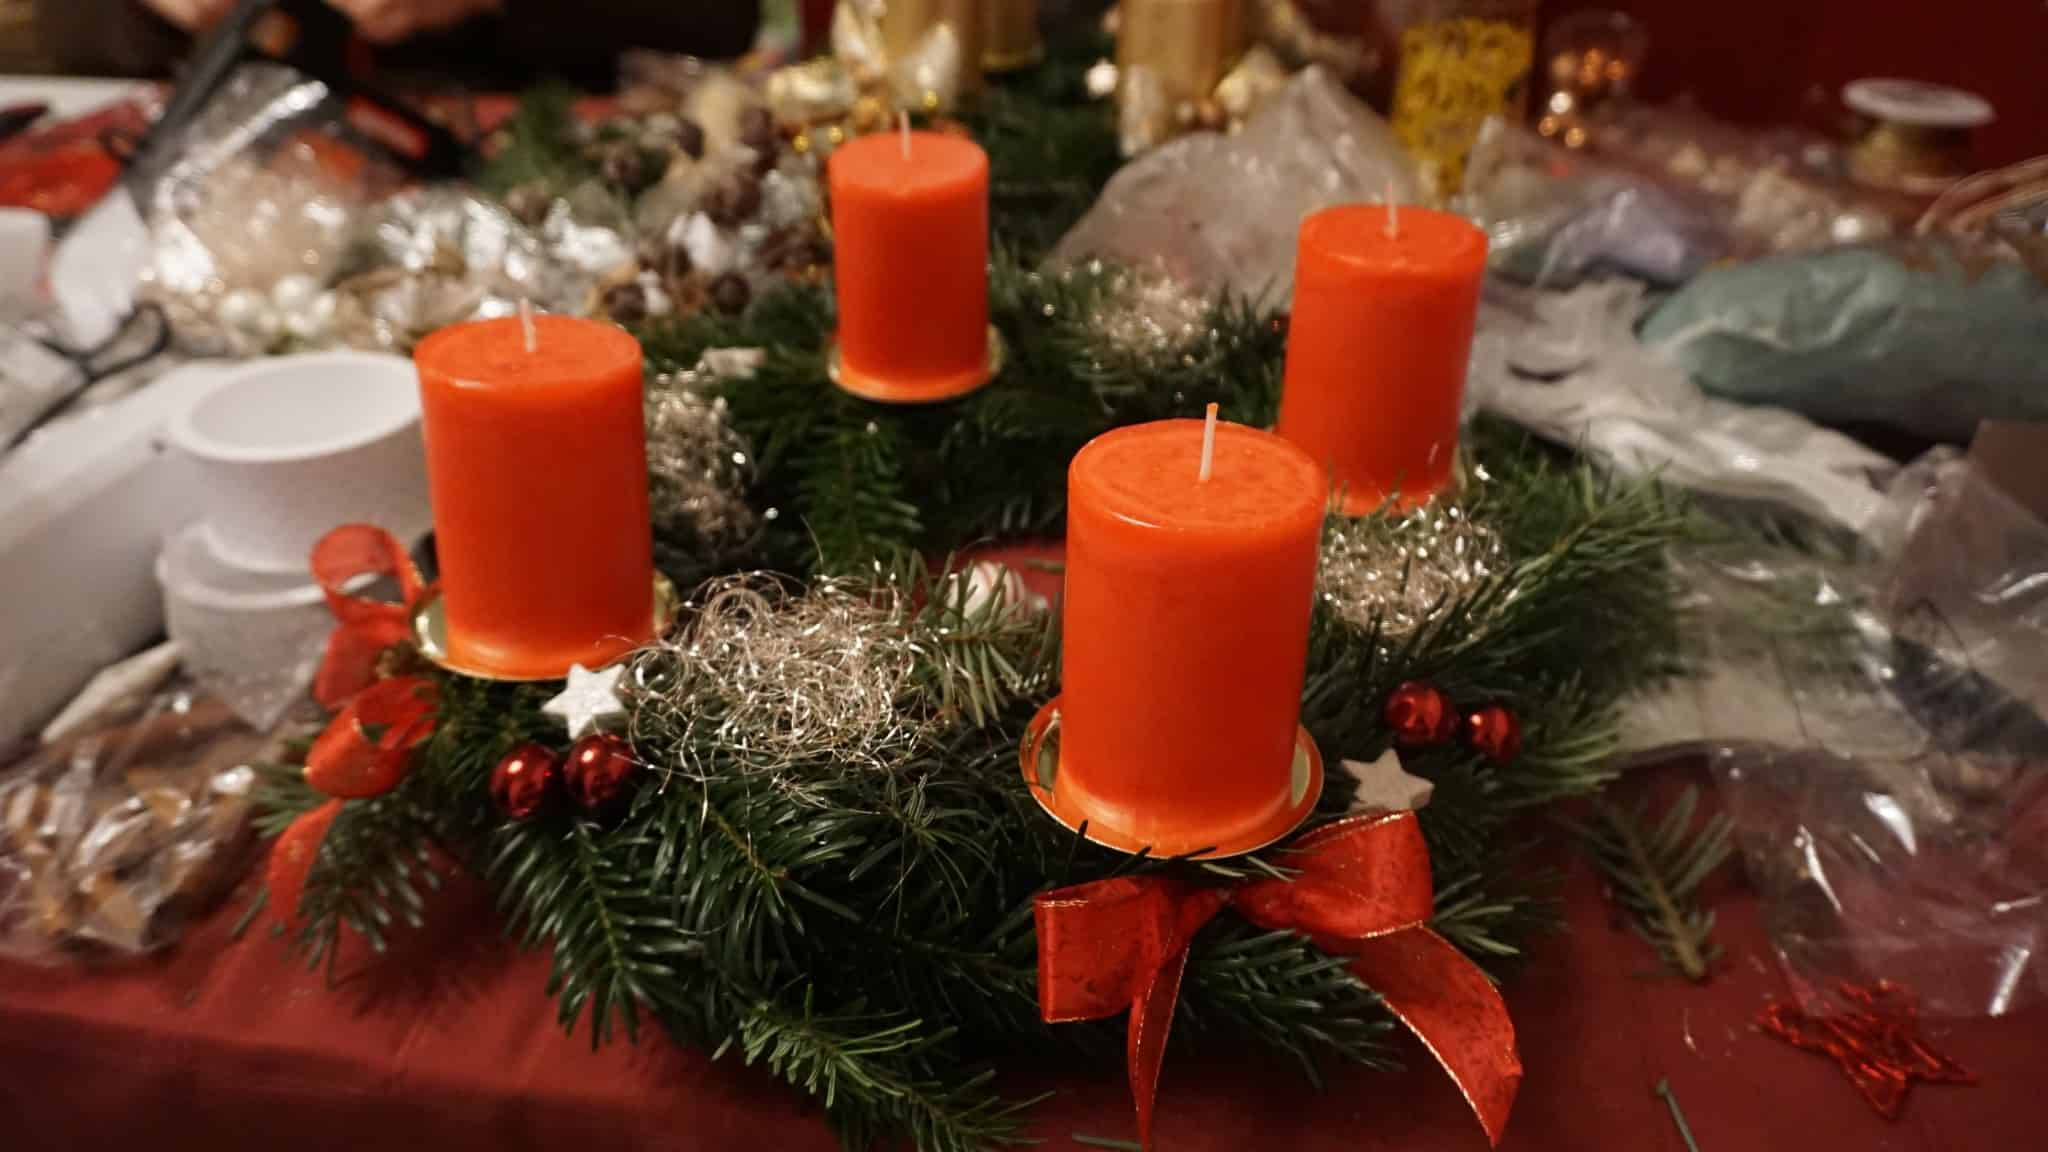 adventkranzbinden8